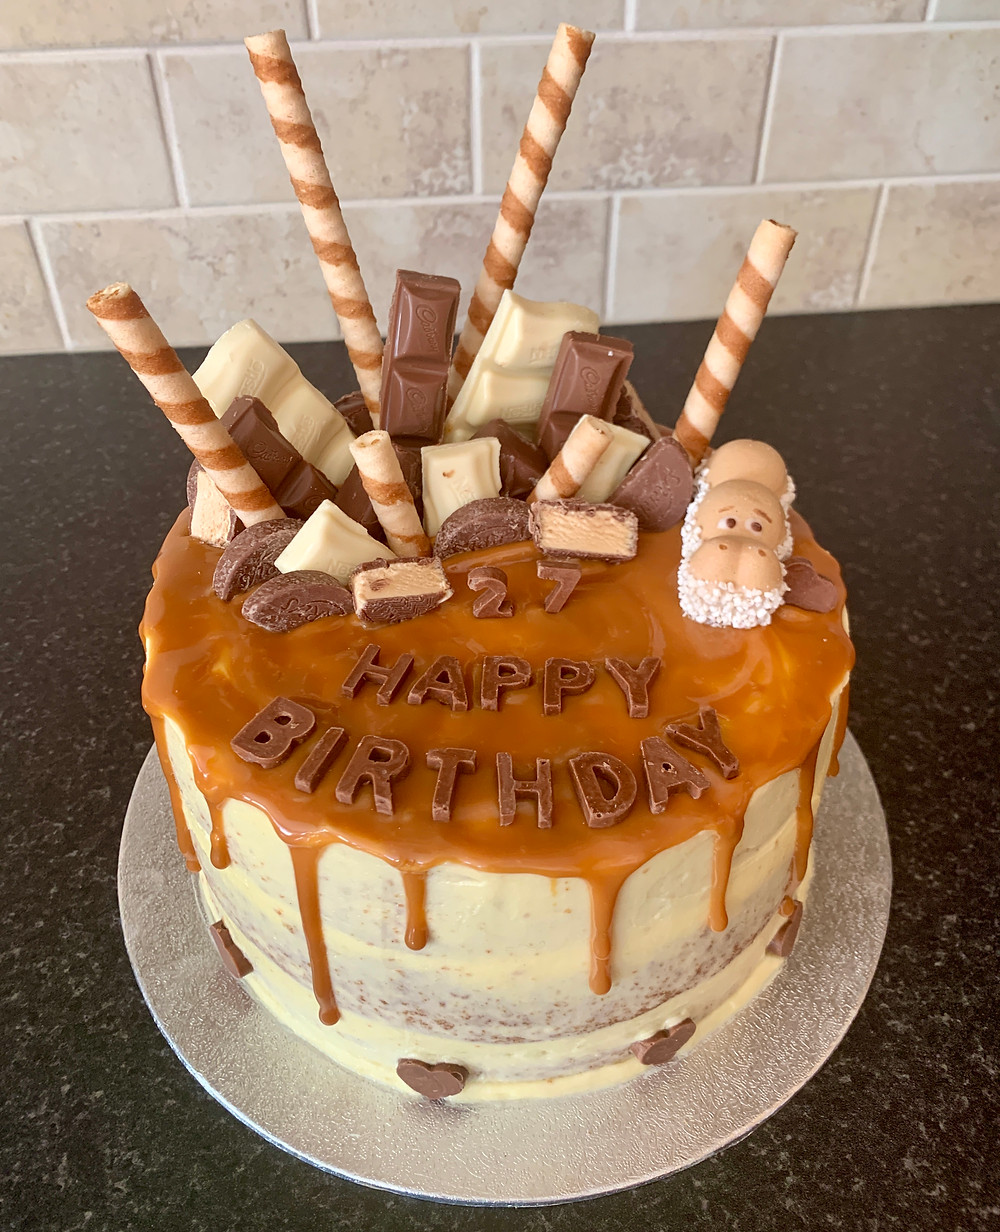 Birthday cake decorated with caramel sauce dripping and a selection of white and milk chocolate on top